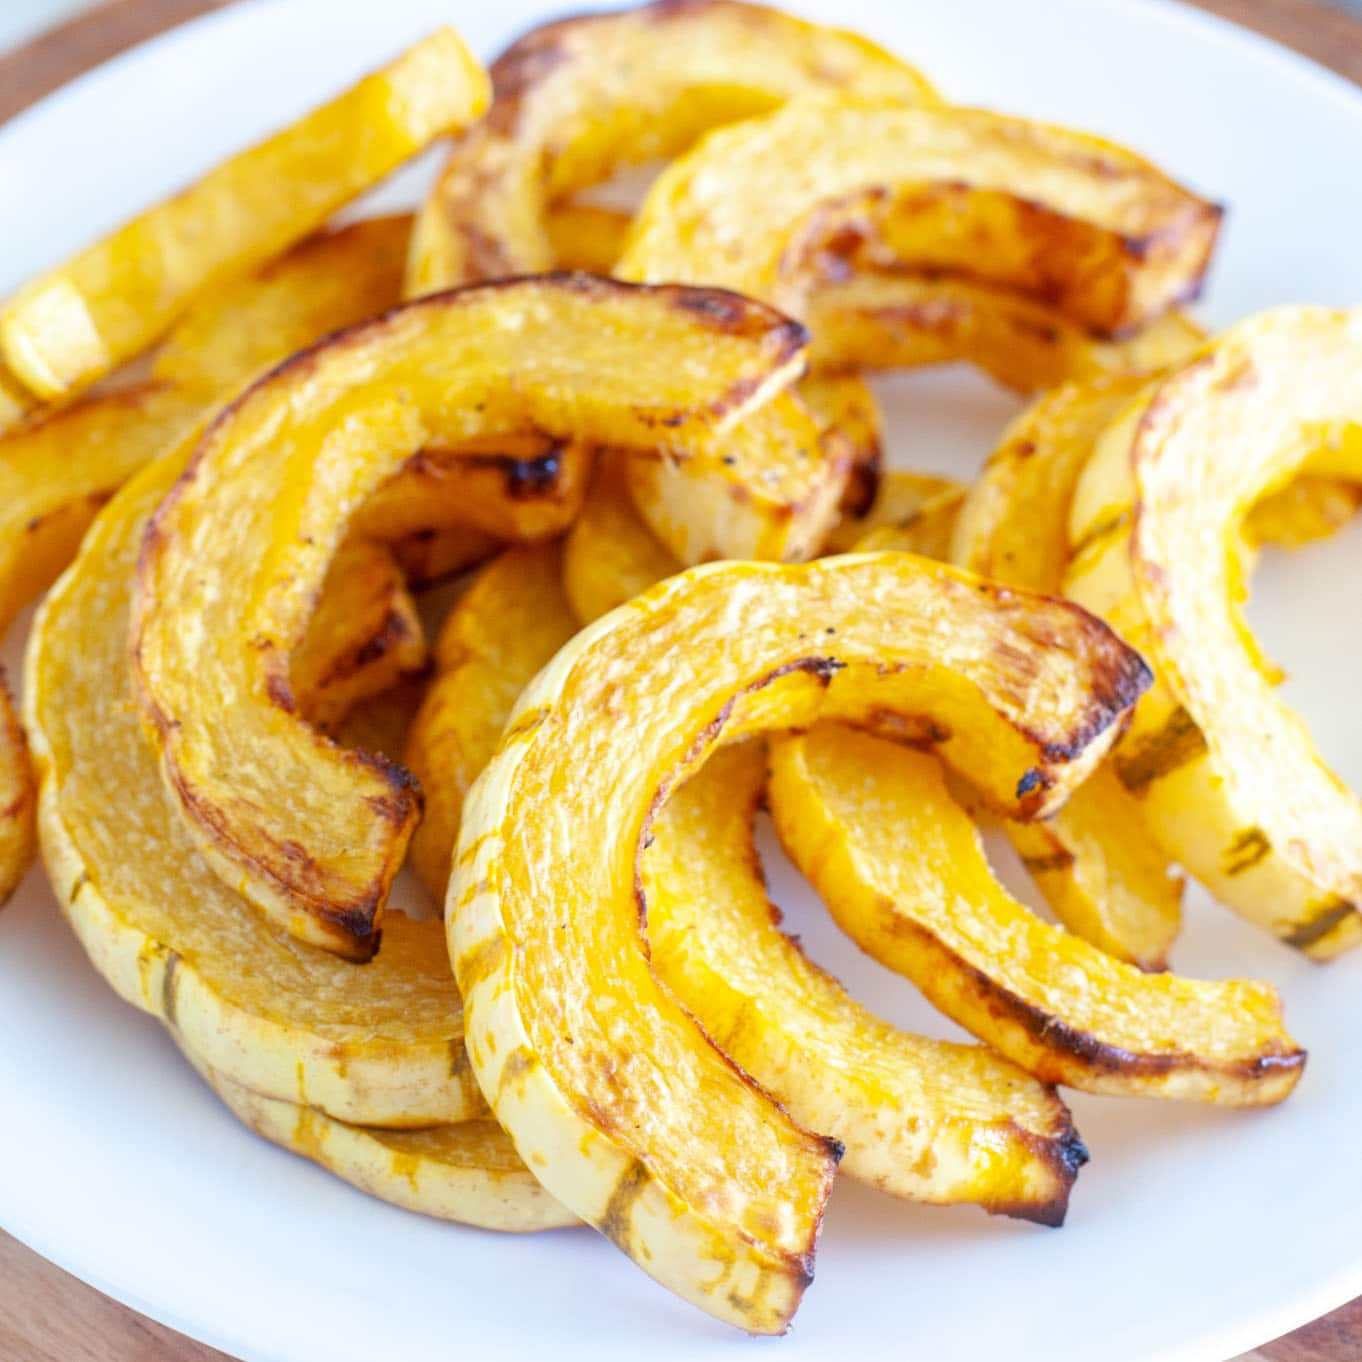 Sliced roasted squash on plate.